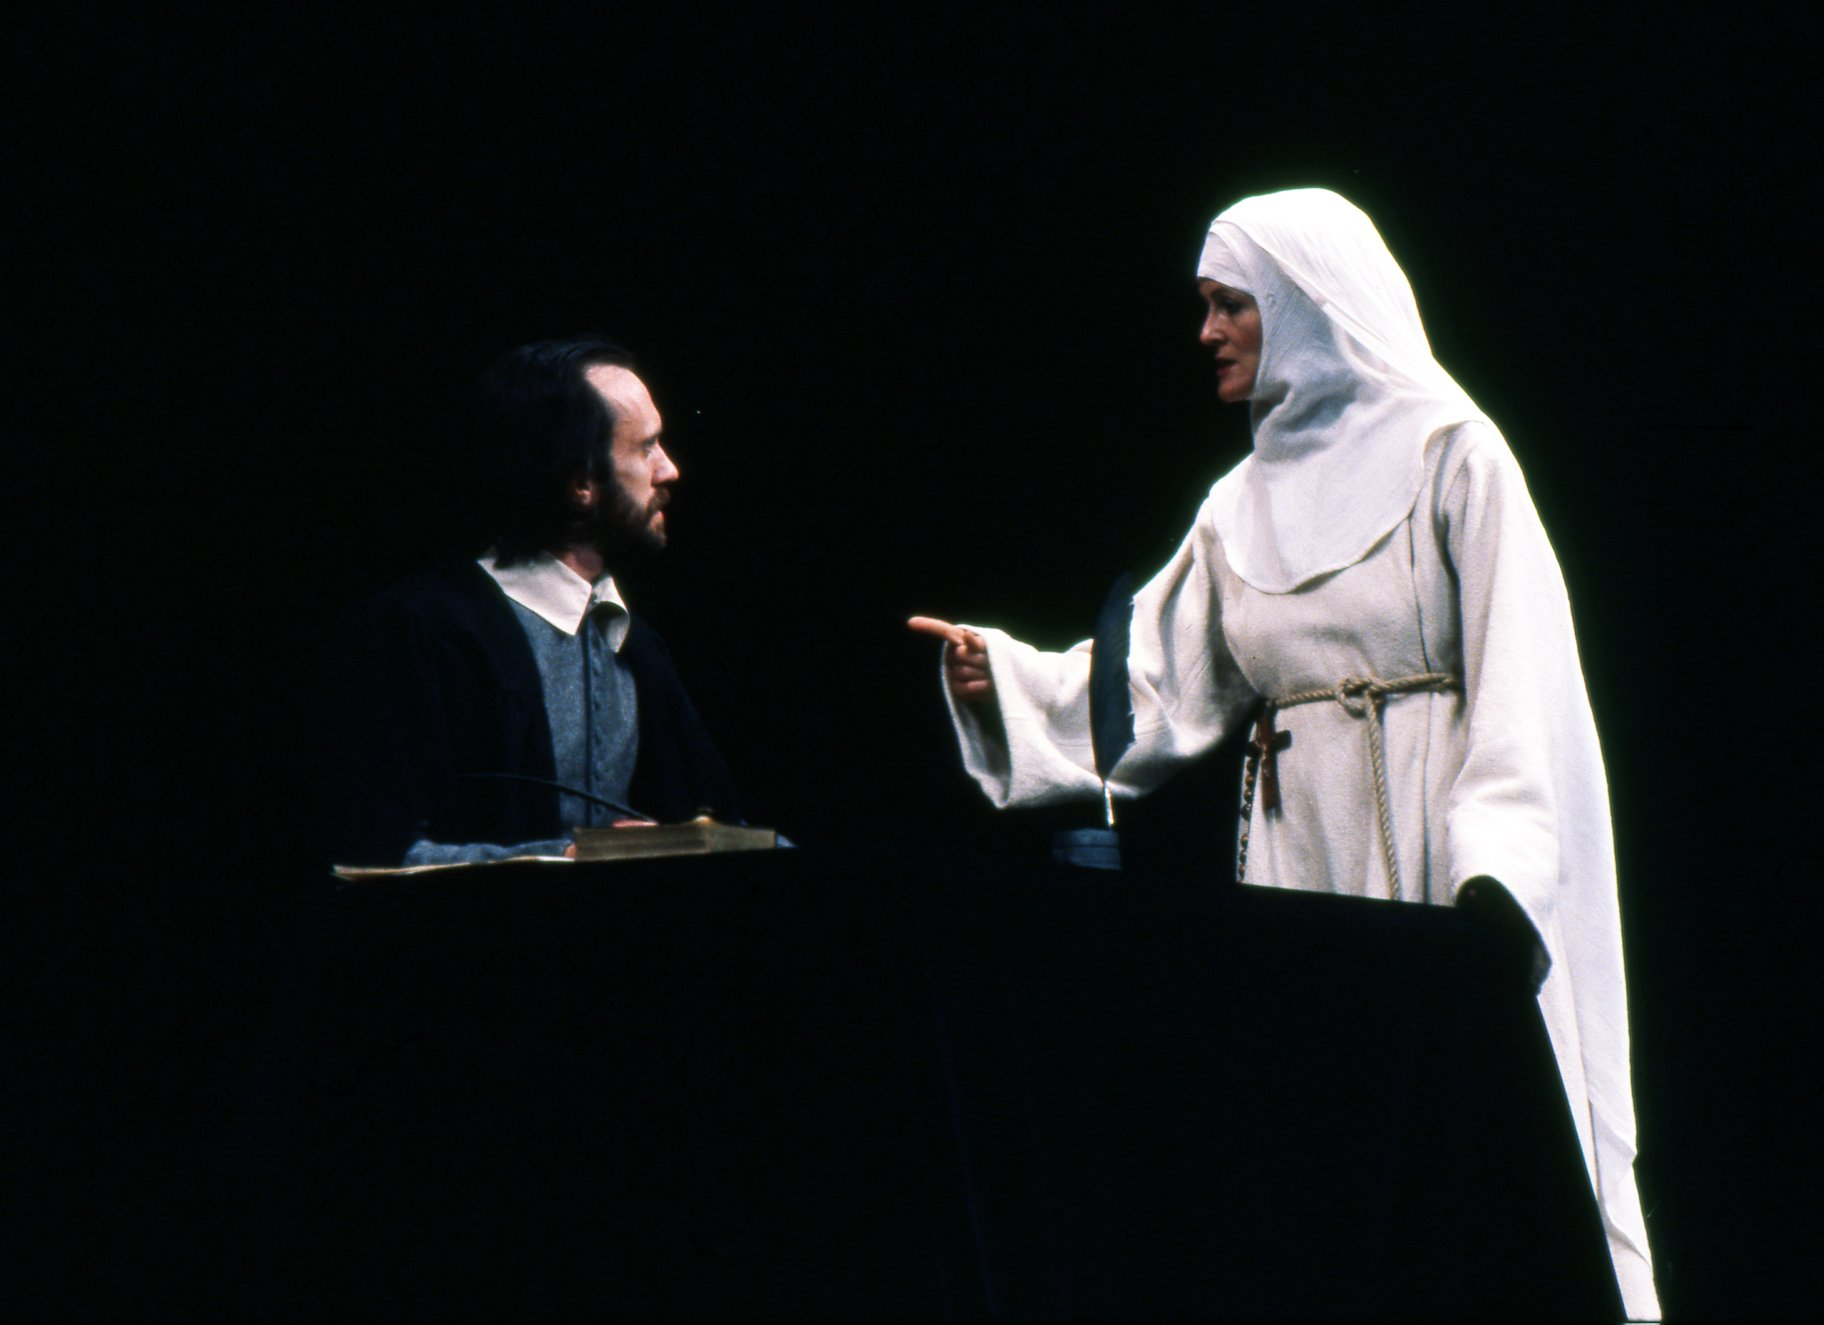 A nun points a finger at a bearded man.